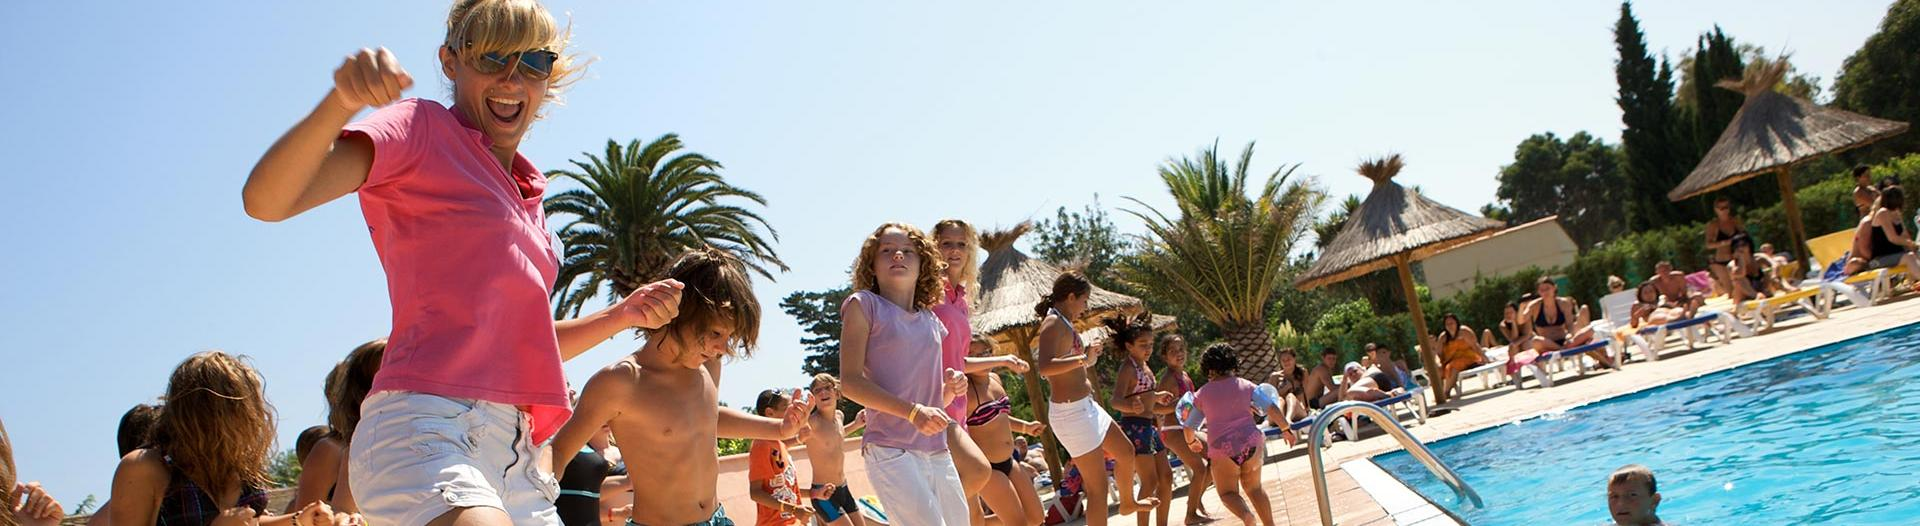 slider-camping-le-littoral-argeles-sur-mer-animations-sportives